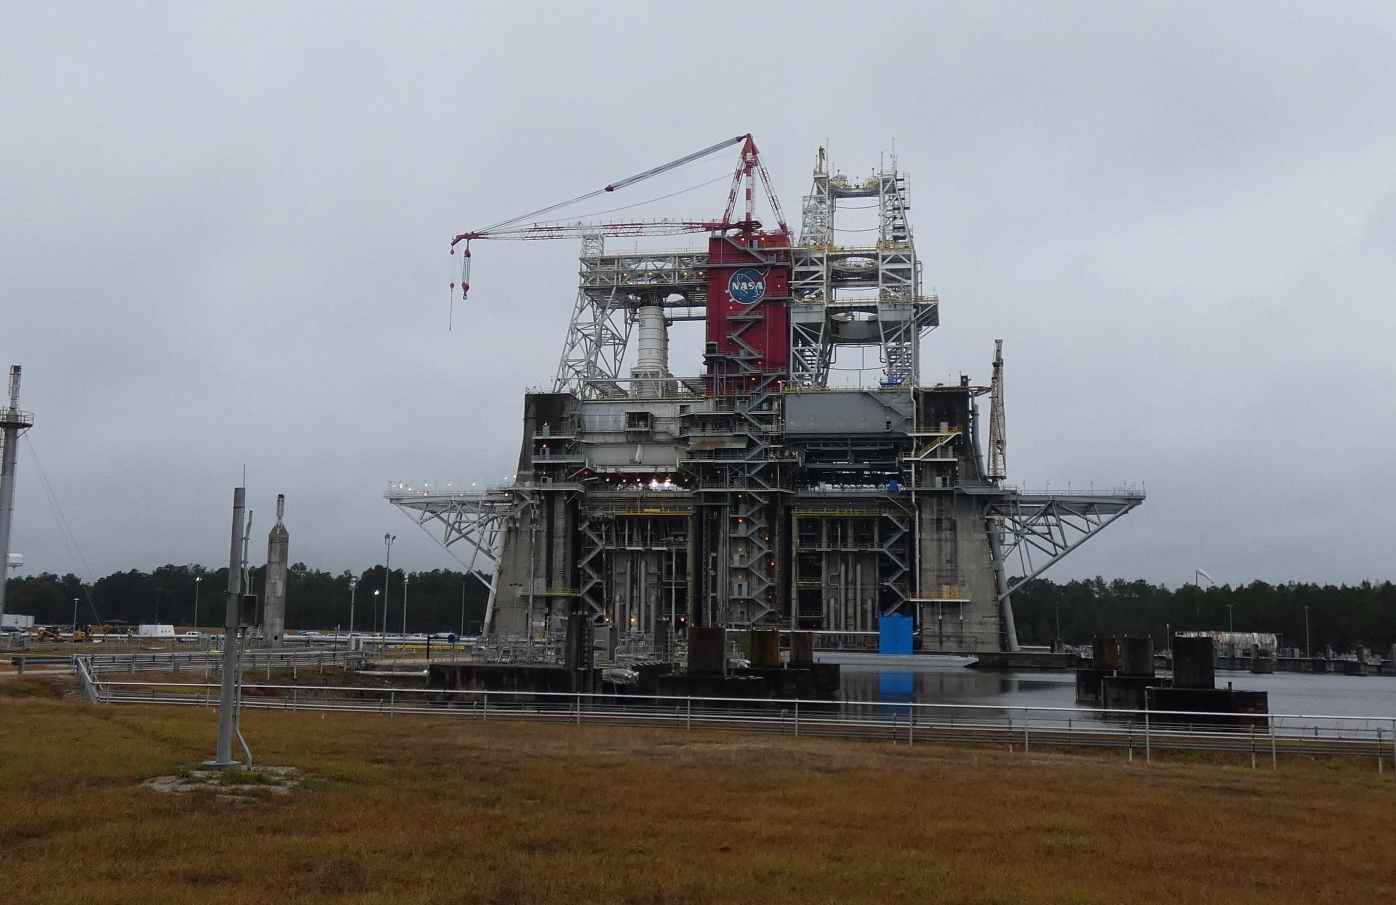 NASA Stennis wrapping up B-2 Stand activation for SLS Green